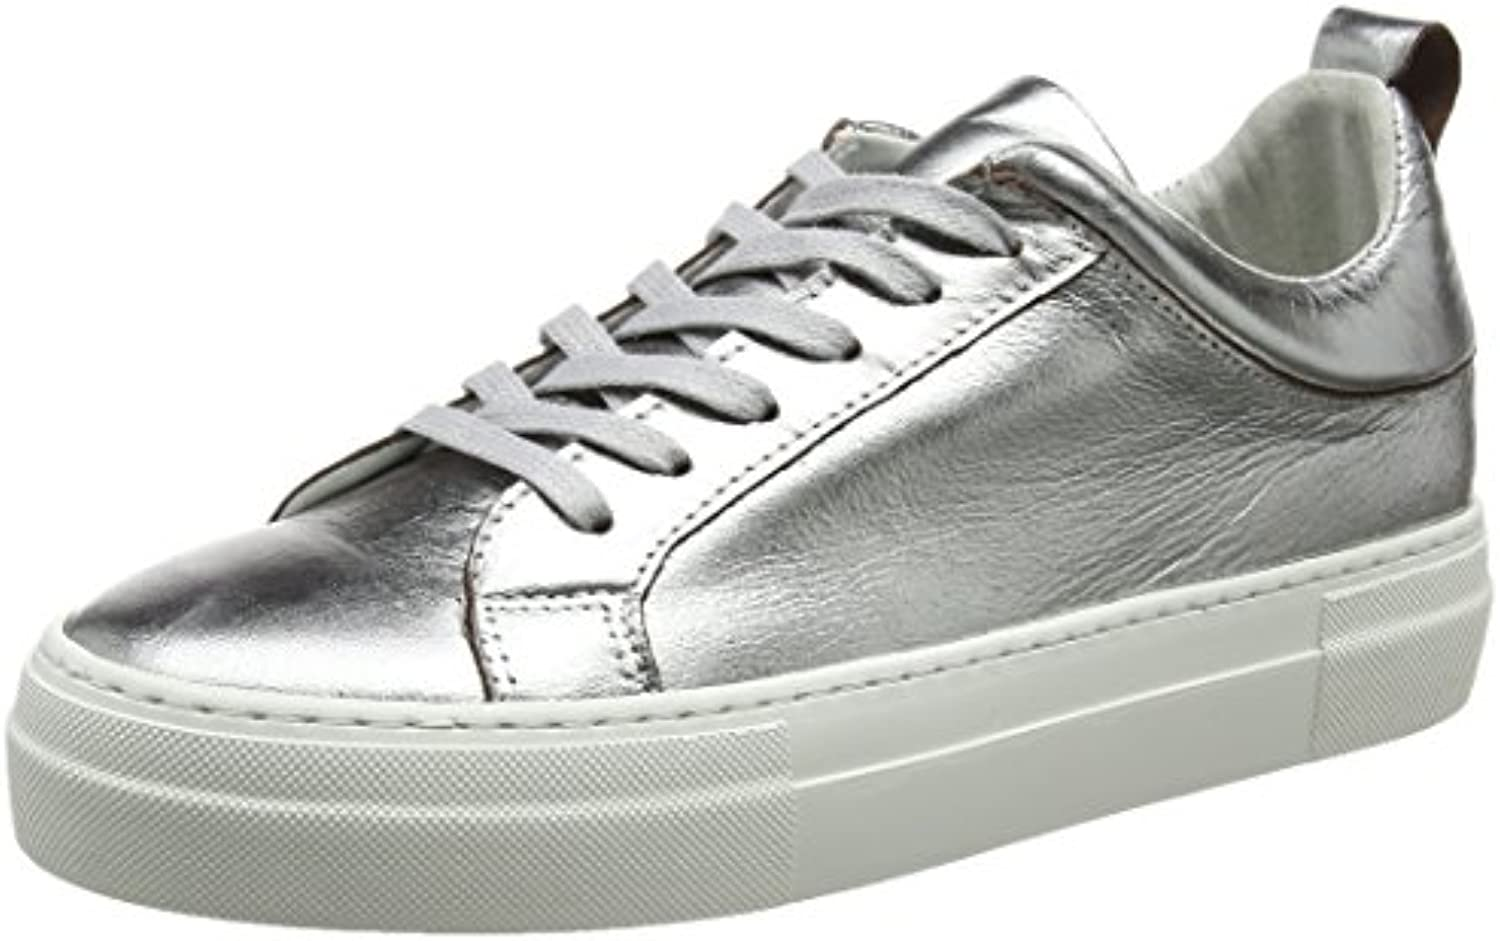 Pieces Pieces Pieces Pspaulina Leather Sneaker Silver, Sneakers Basses FemmeB07112LJFWParent 86b775